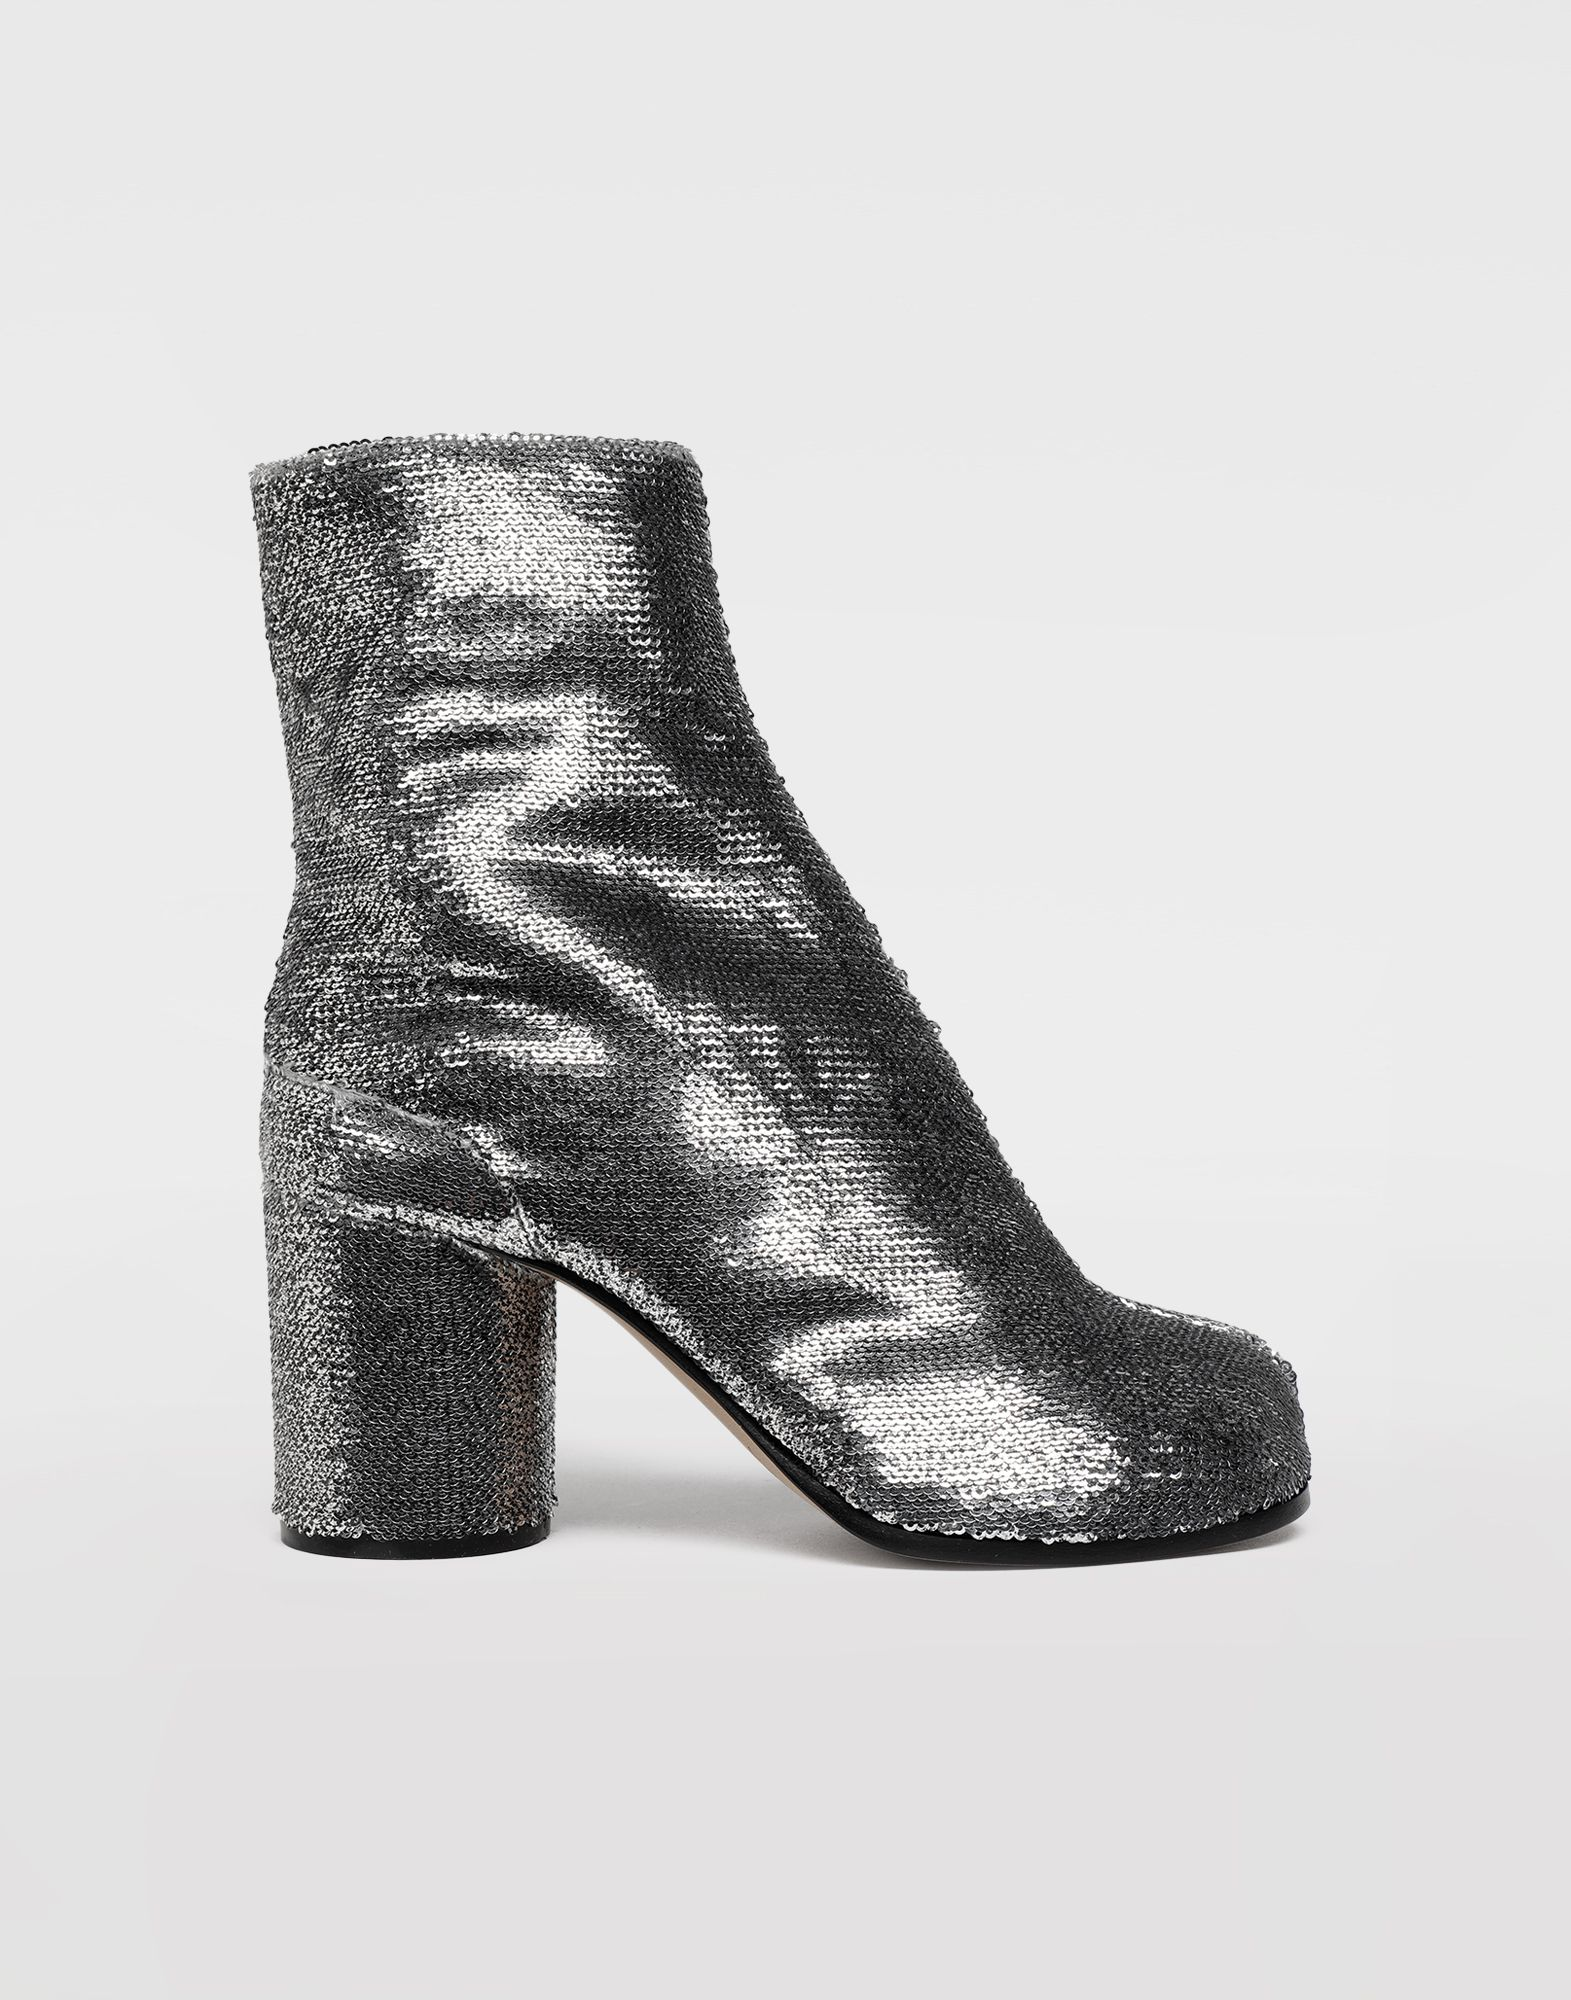 MAISON MARGIELA Tabi sequin boots Tabi boots & Ankle boots Woman f